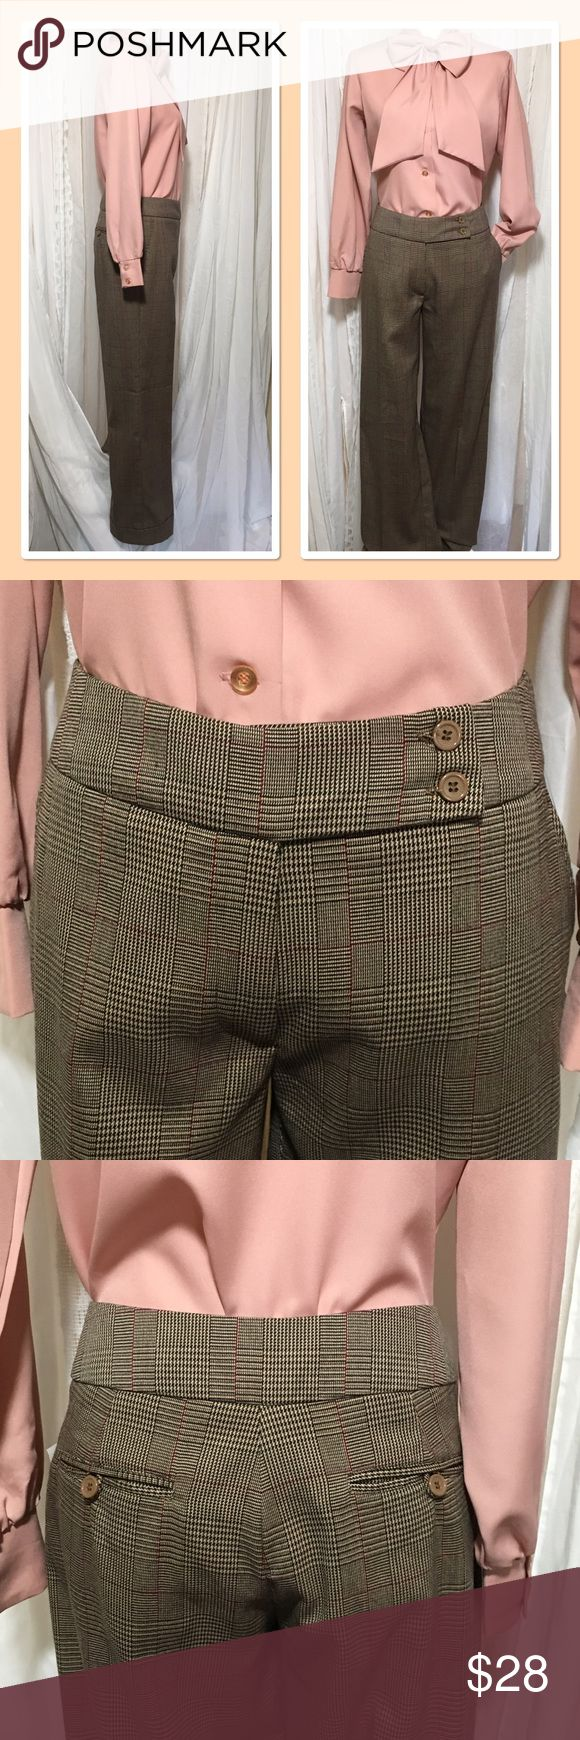 NWT Wide leg wide plaid pant with cuff size 8 NWT wide leg men's wear inspired slacks. Great plaid colors beige, camel, burgundy, and red. Has two pockets in front, 2 split pocket in back and two buttons at waist. Wide cuff on bottom of pant. Nice soft fabric with some stretch. Waist 16 inches Inseam 32 inches Rise 10 inches Leg opening 10 inches 65% polyester 34% rayon 1% spandex These are the perfect fall Slack. Super comfy for any day of the week! Thanks for visiting my closet feel free…